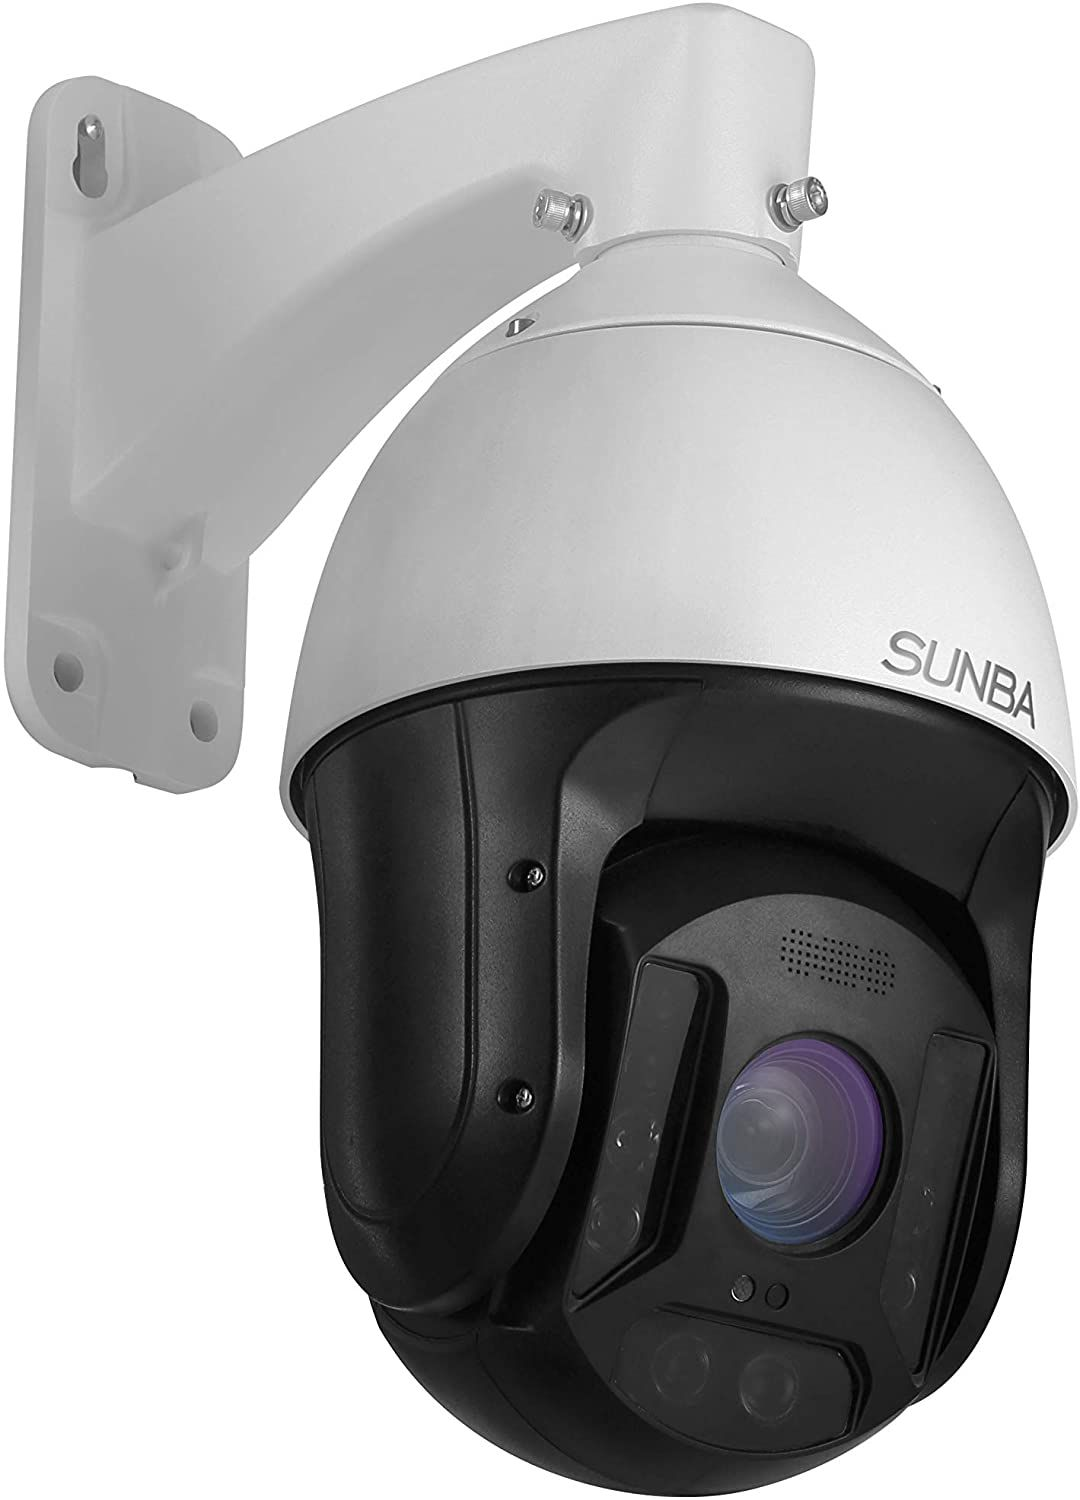 25x Optical Zoom 3mp Ip Poe Outdoor Ptz Camera Built In Mic High Speed Security Ptz Dome Ptz Camera Night Vision Optical